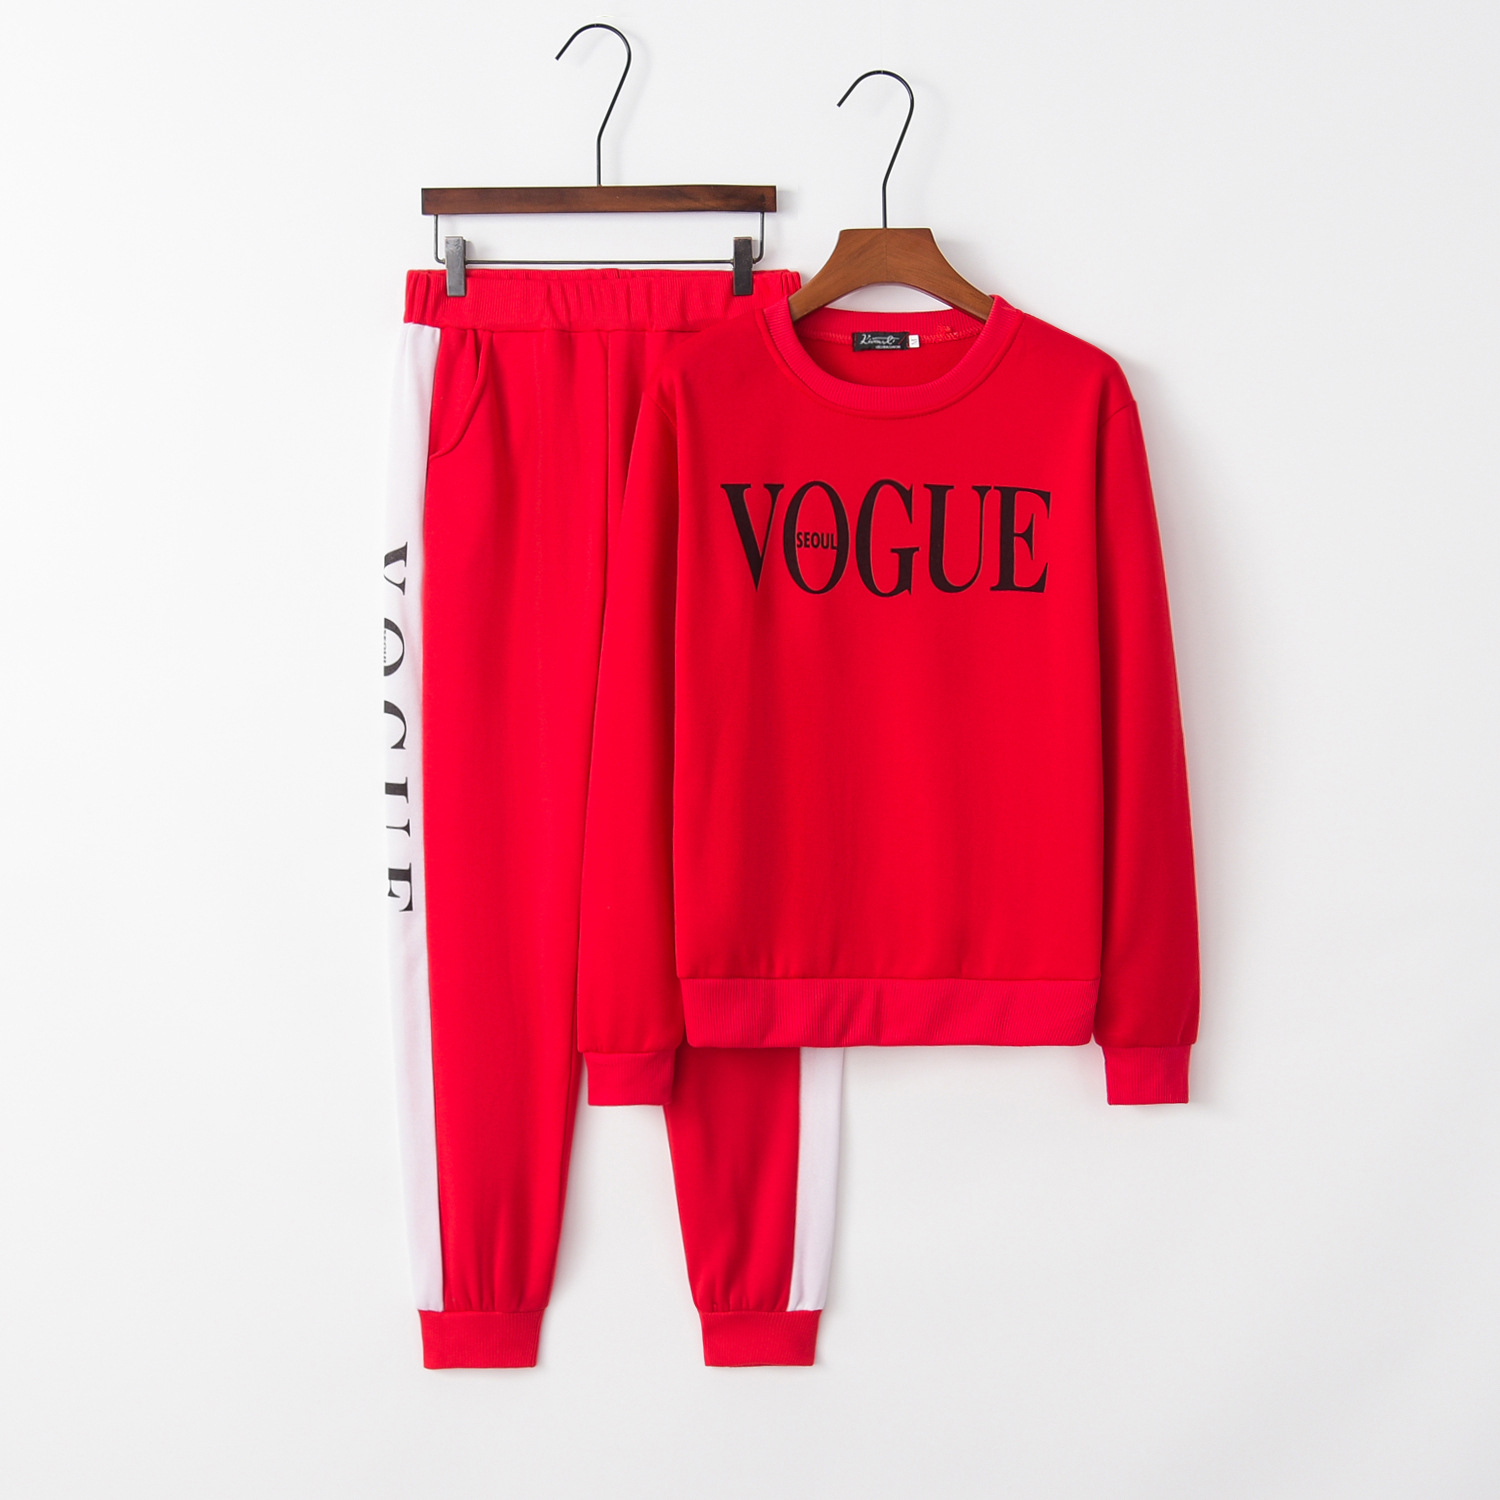 Letter Vogue Cute 2020 New Design Fashion Hot Sale Suit Set Women Tracksuit Two-piece Style Outfit Sweatshirt Sport Wear